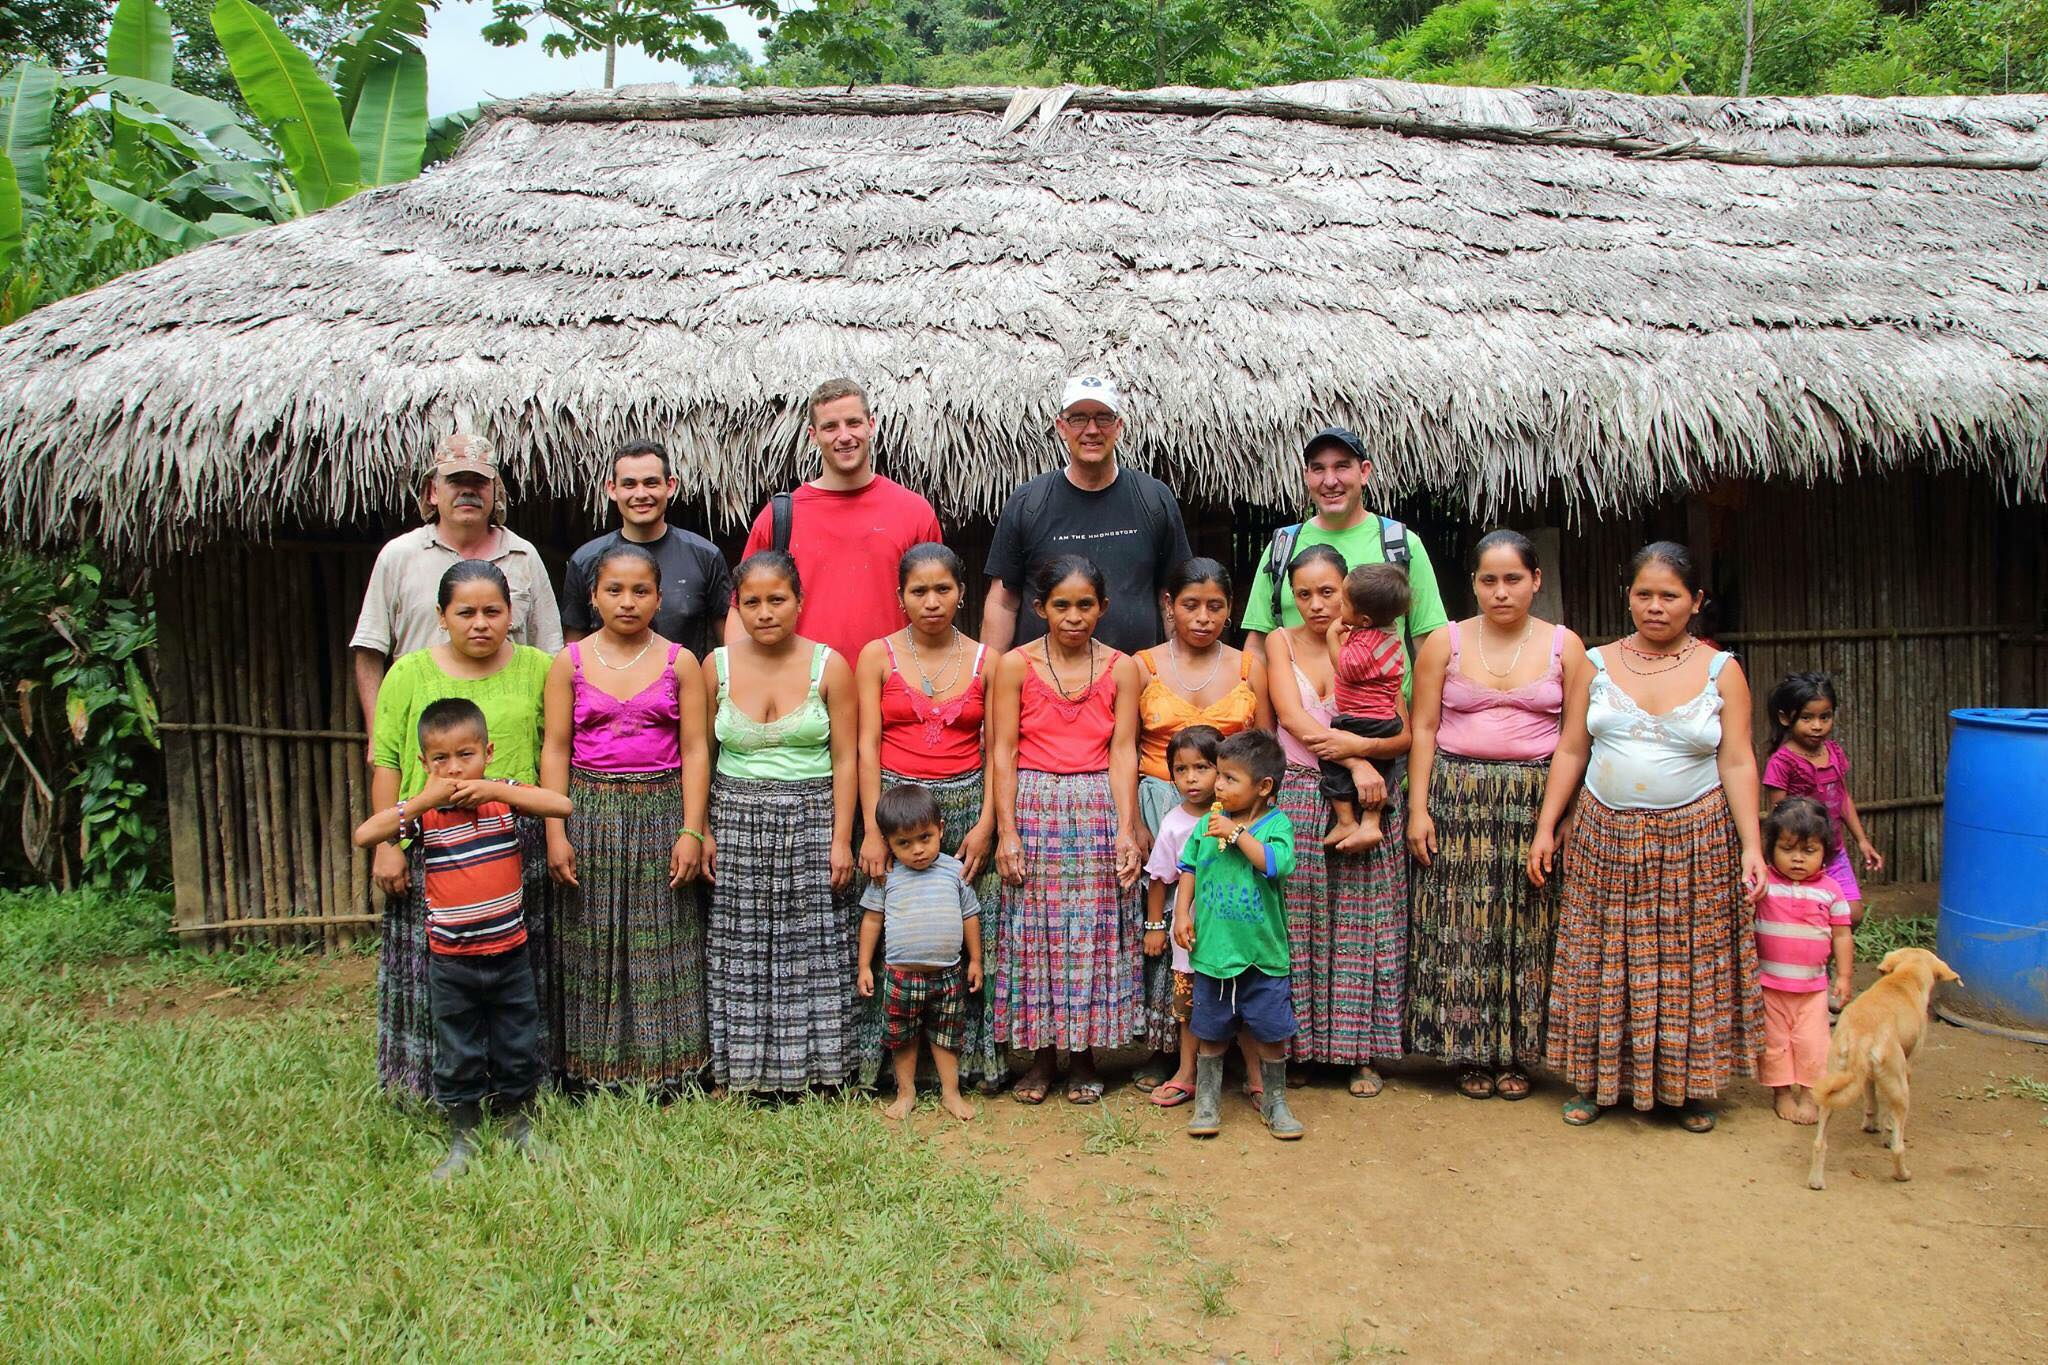 Our volunteers in front of the old school house with a group of mothers from the village.